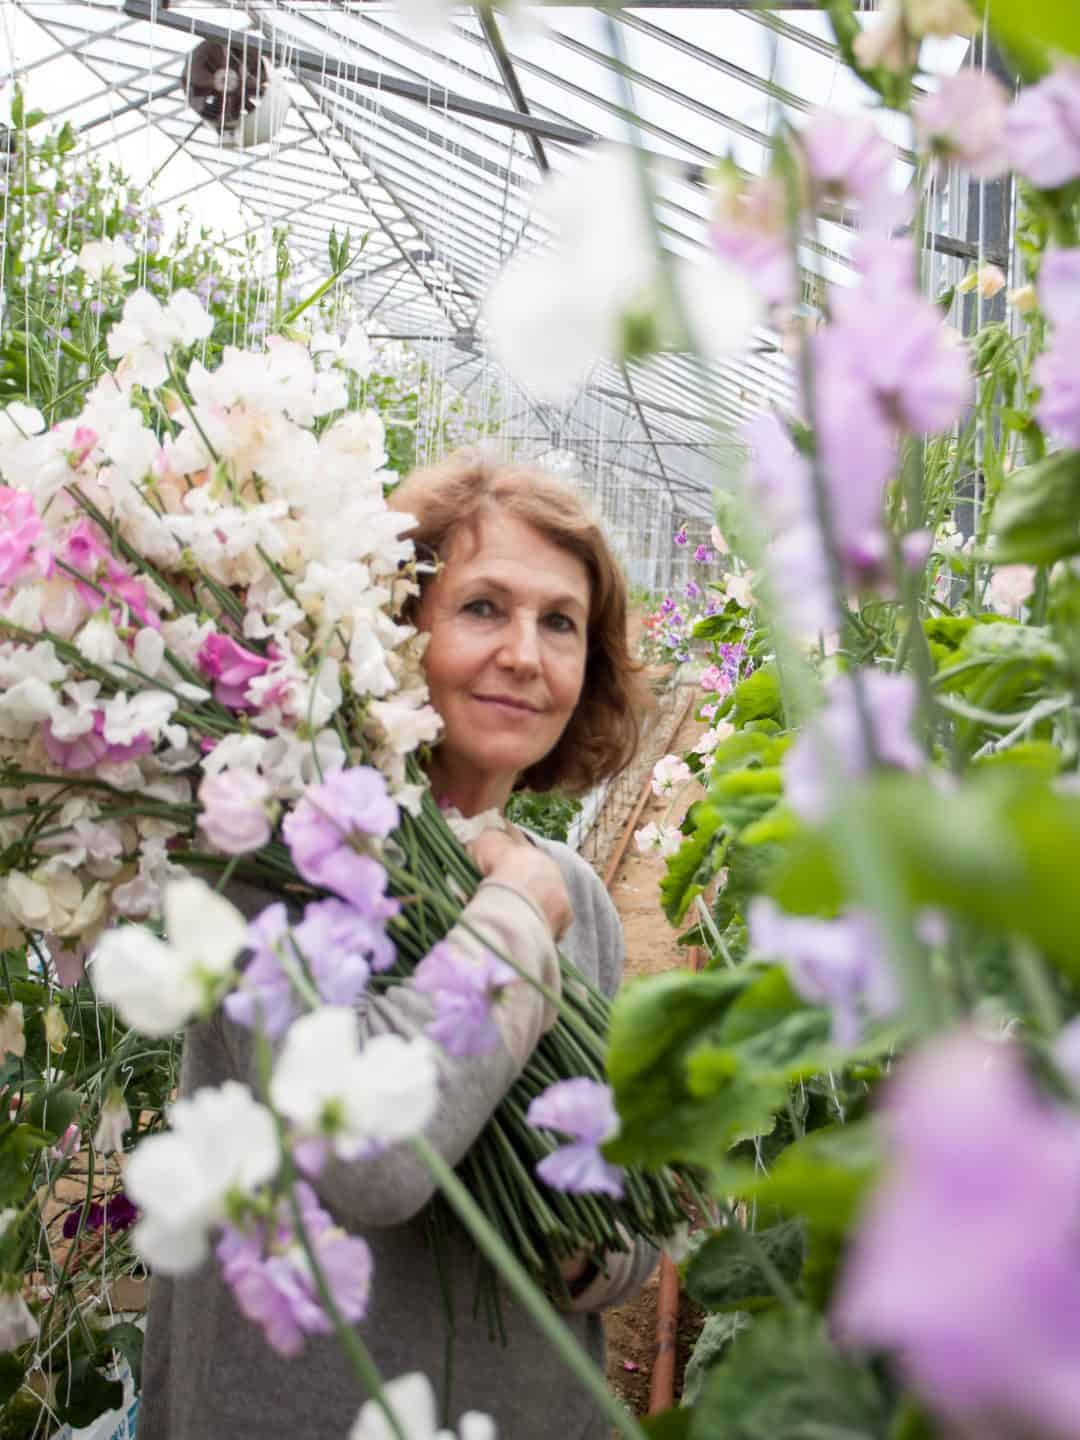 rosebie morton founder of the real flower company with armfuls of sweet peas